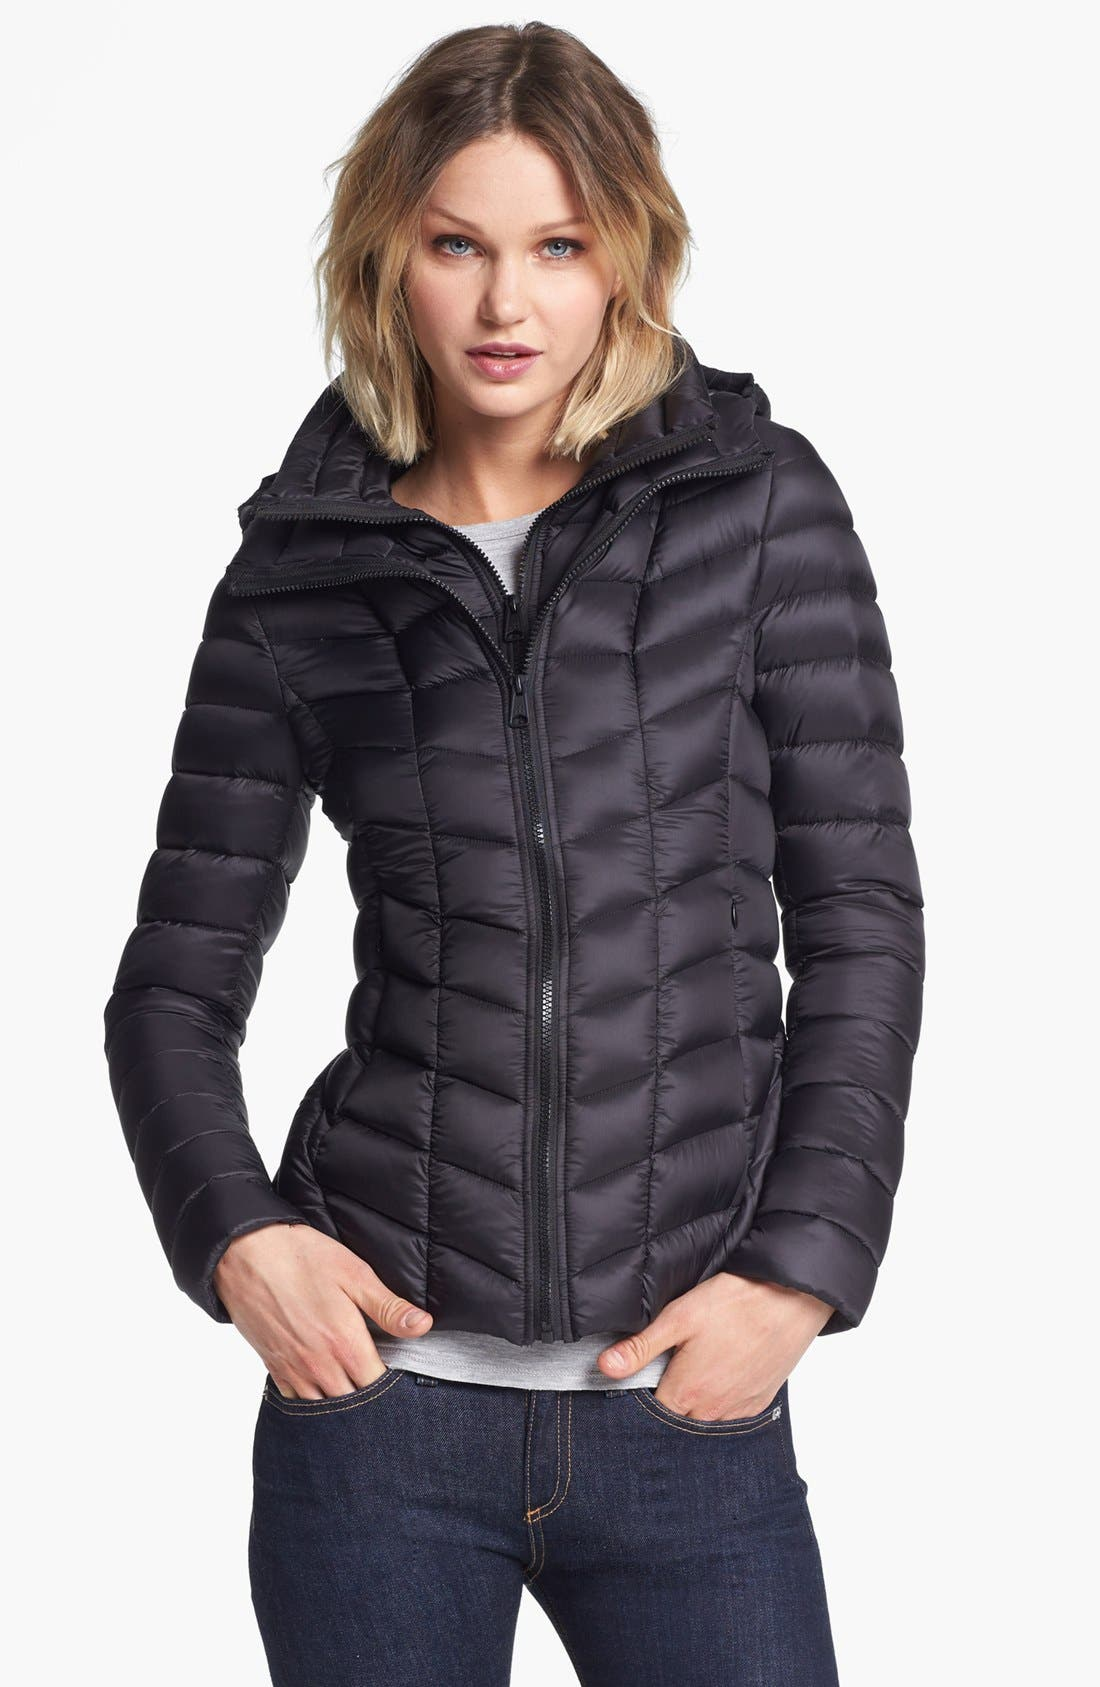 Alternate Image 1 Selected - Soia & Kyo Hooded Packable Down Jacket with Front Insert